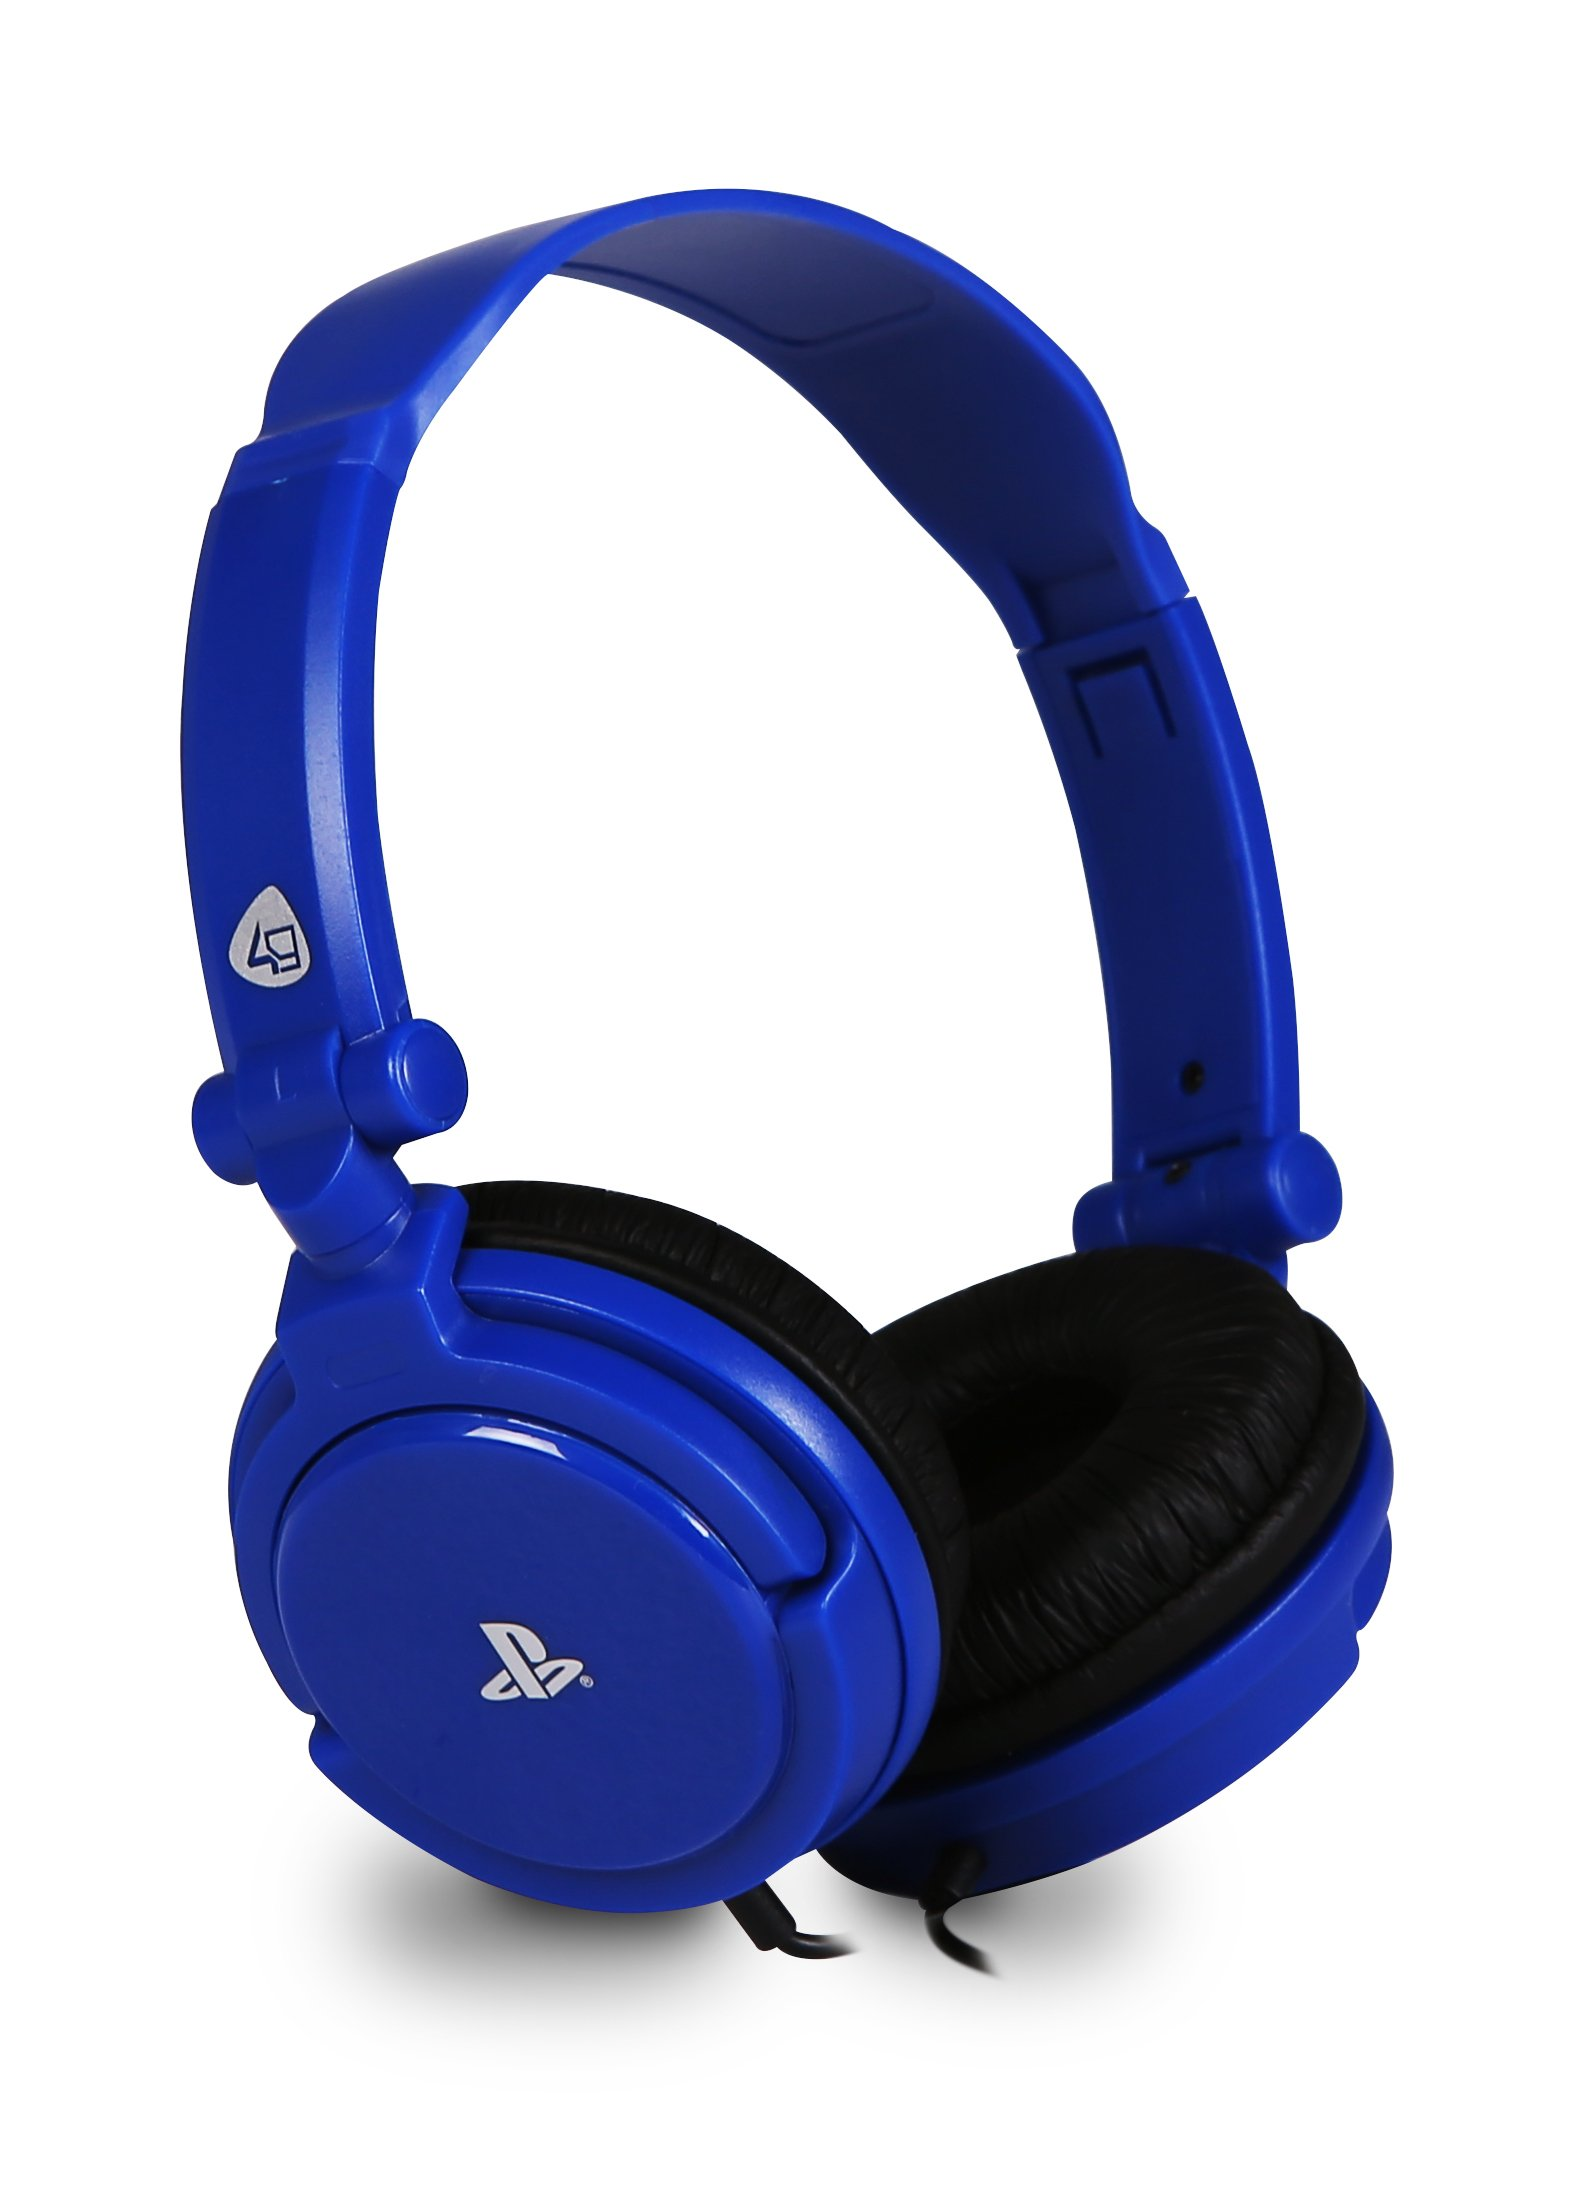 PRO4-10 Officially Licensed Stereo Gaming Headset - Blue (PS4/PSVita) by A4T